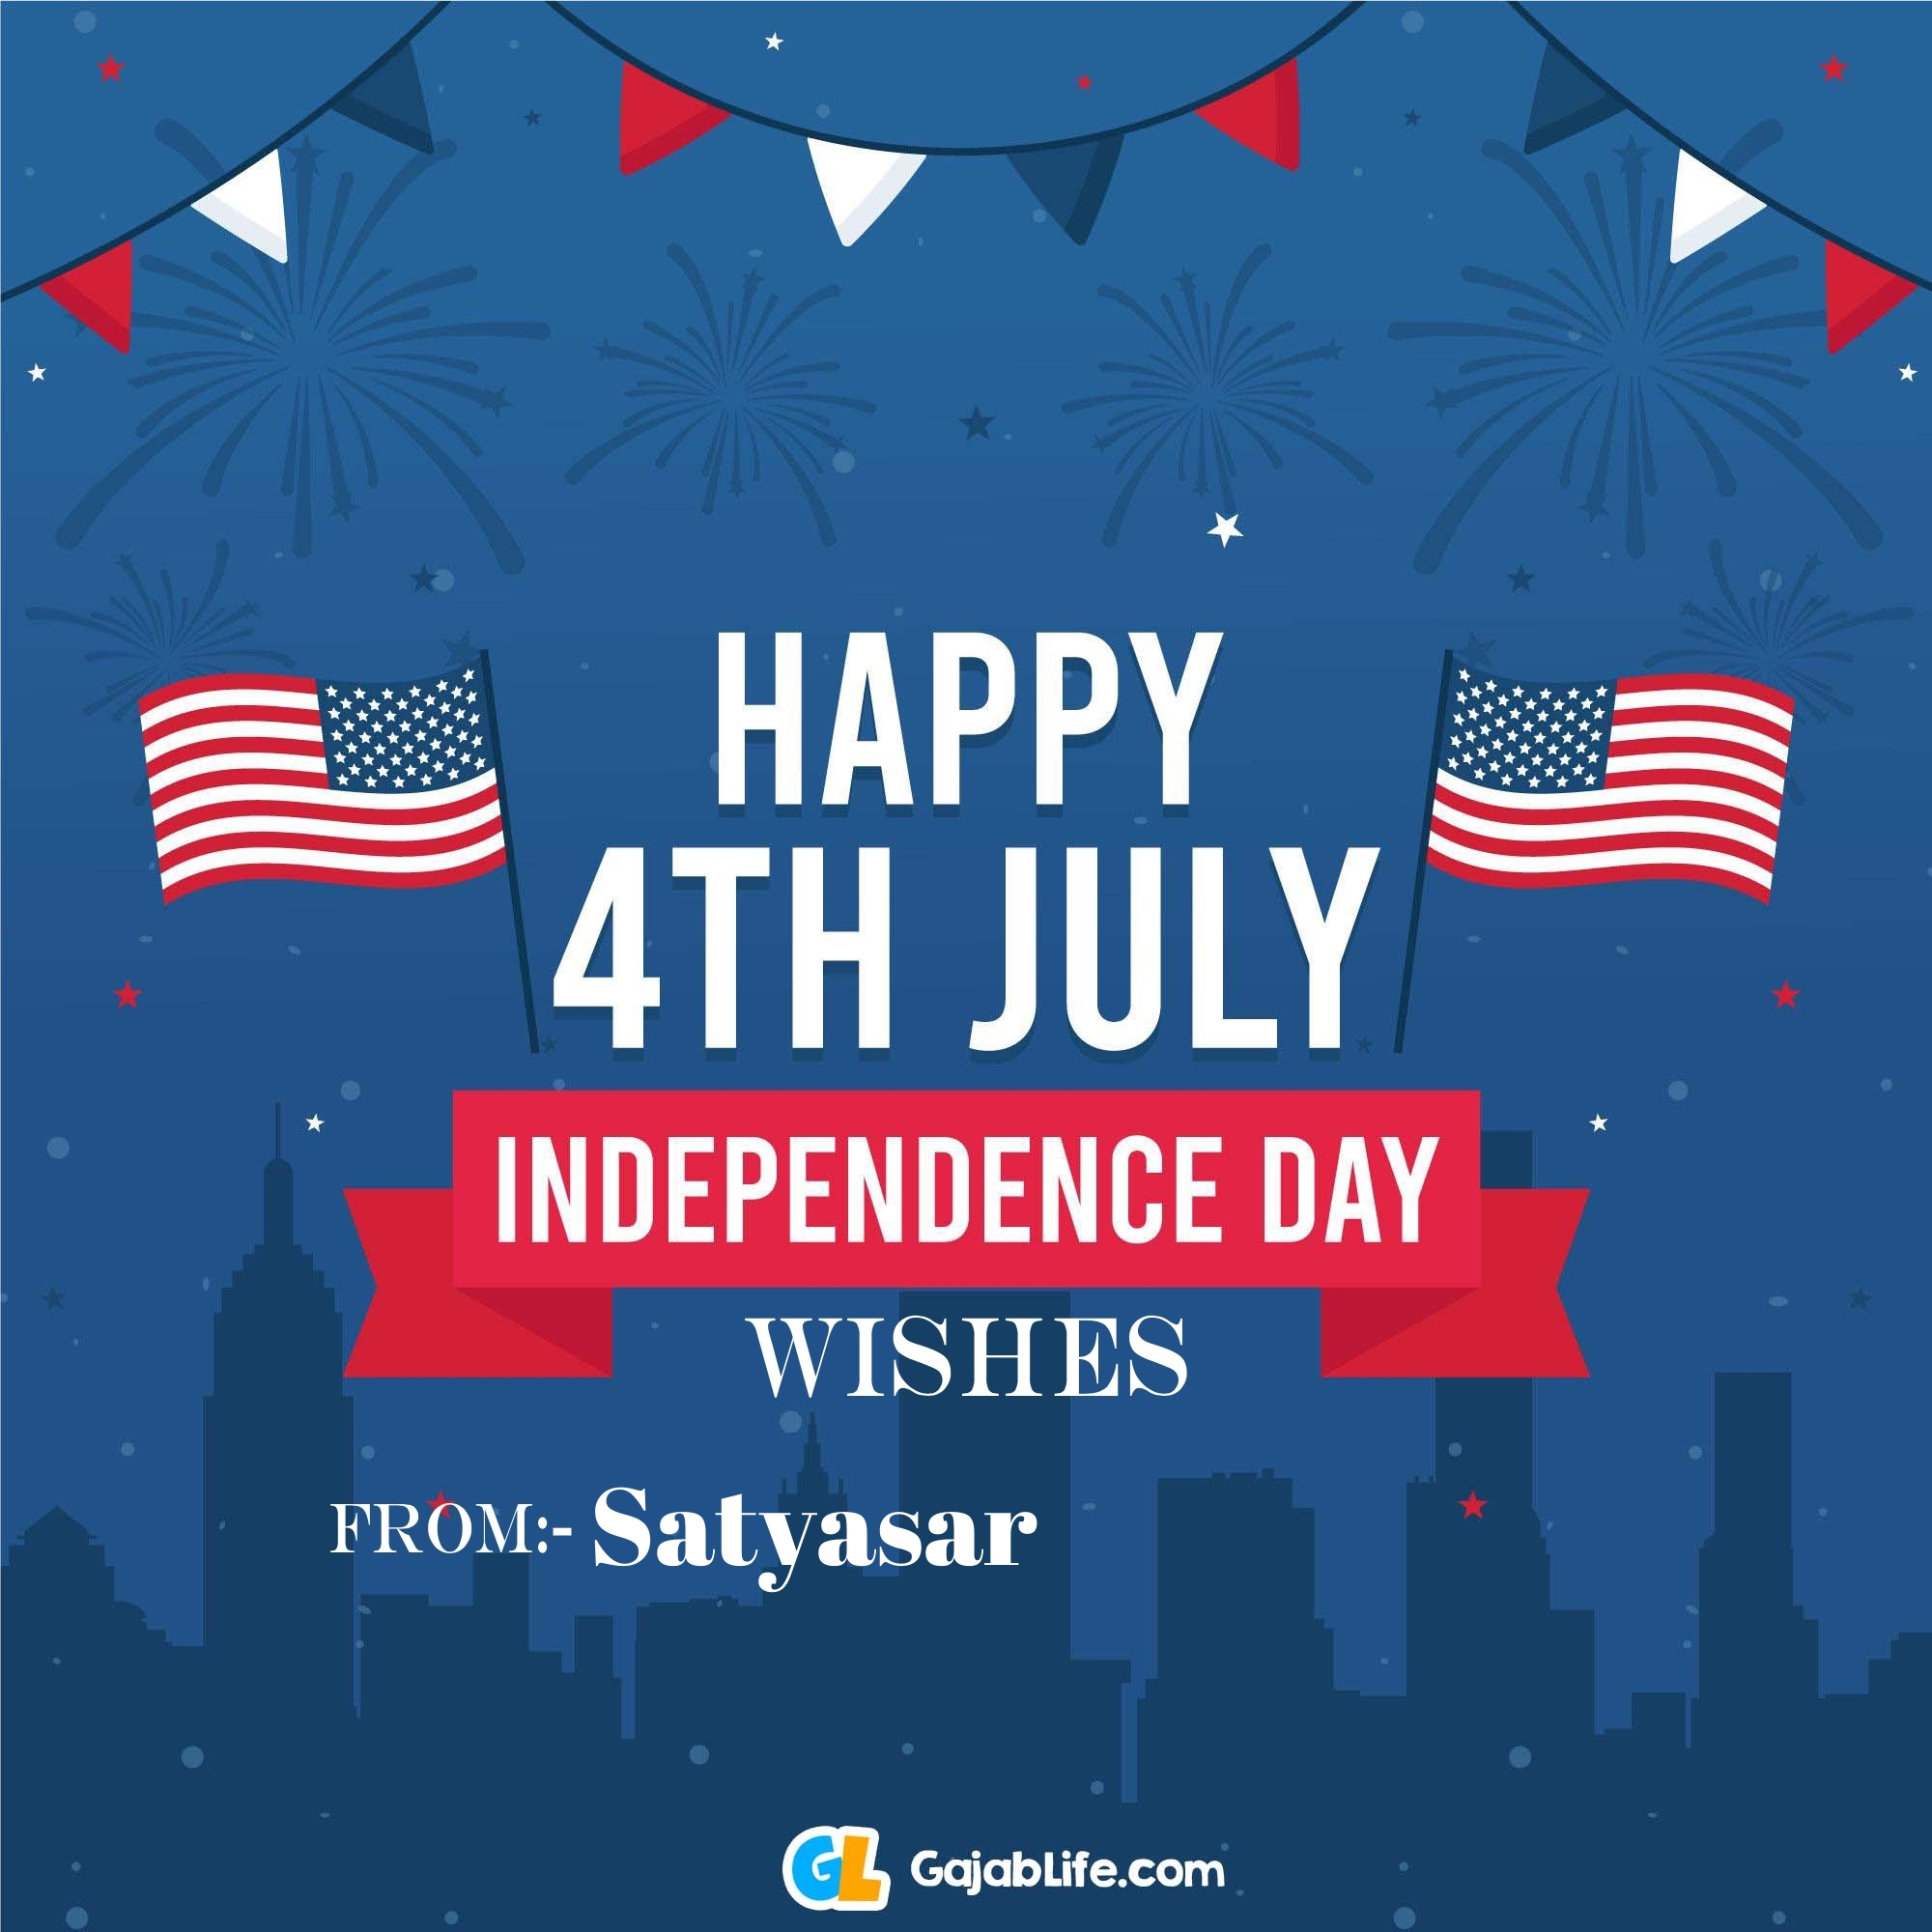 Satyasar happy independence day united states of america images